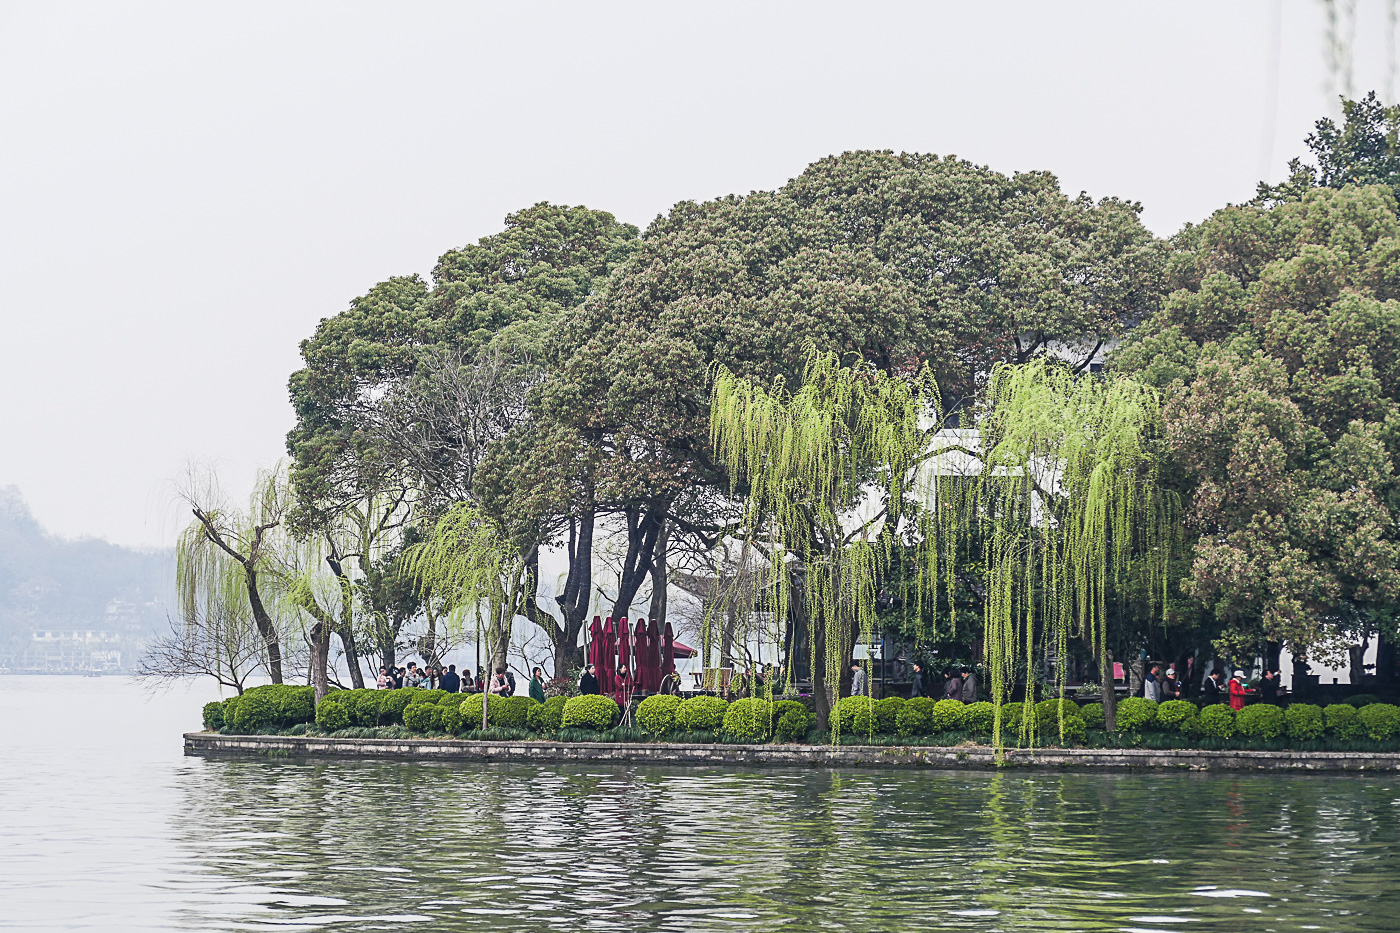 Willow trees dot the shores of West Lake